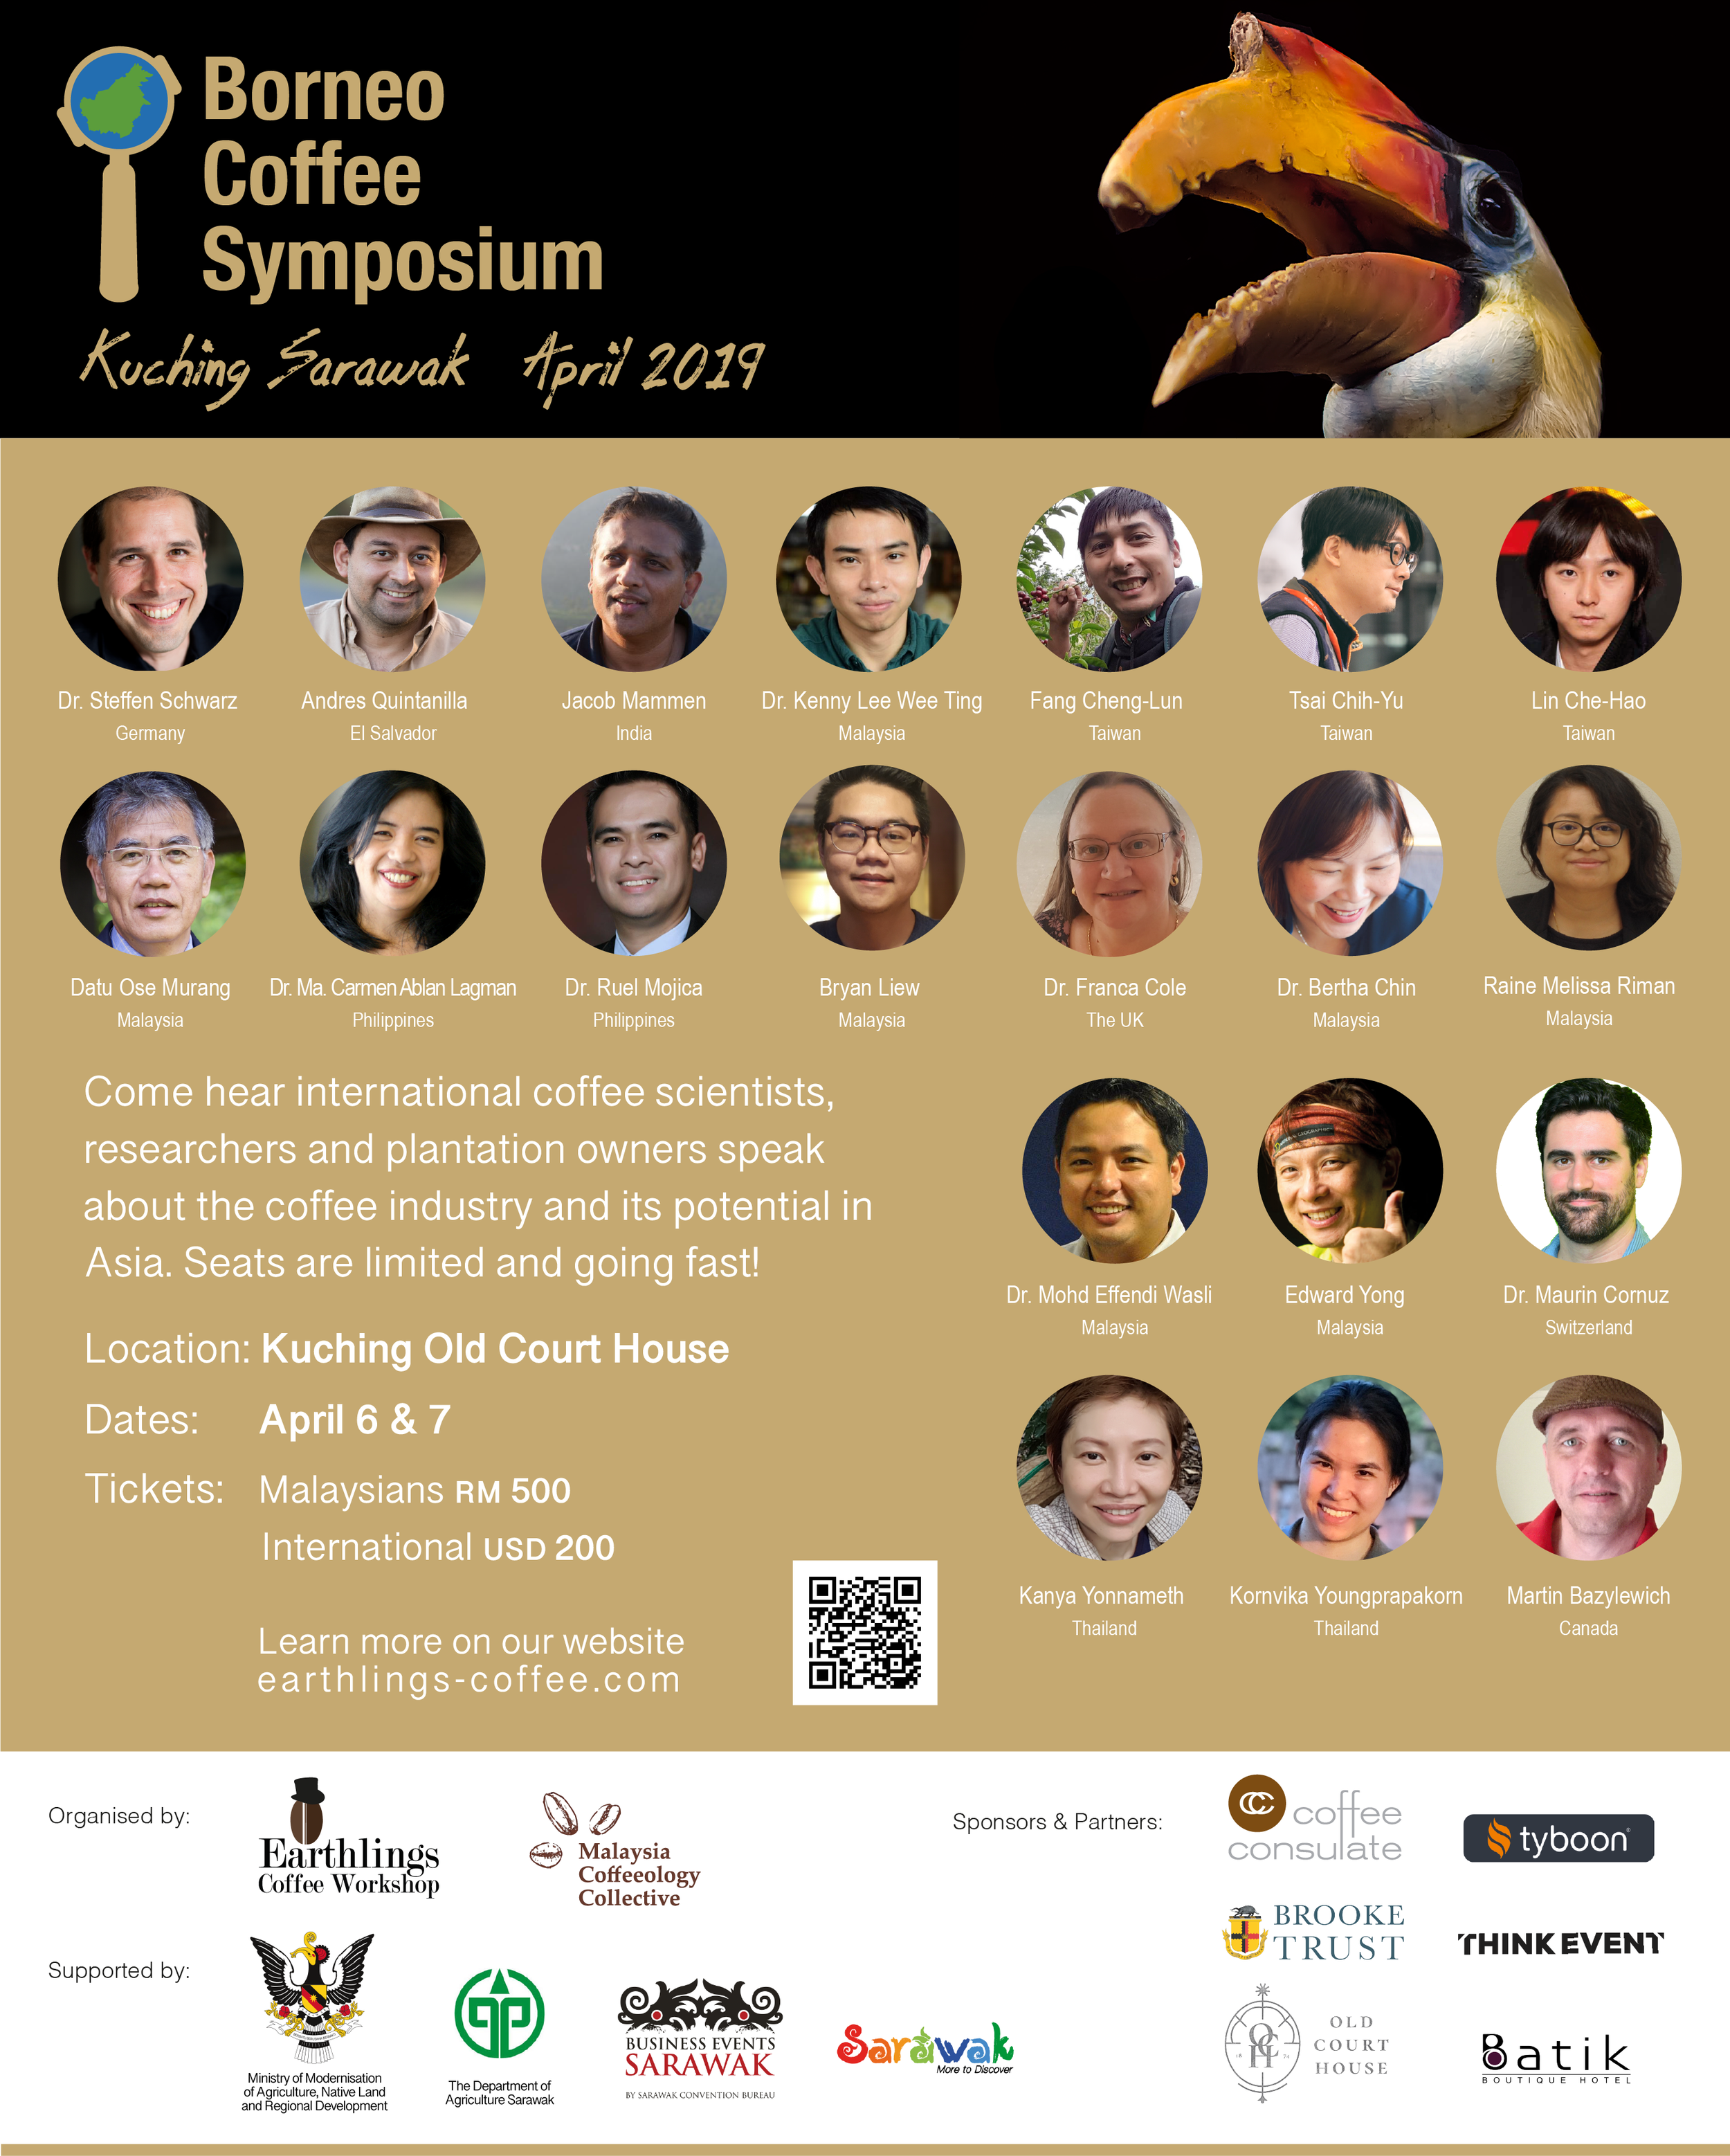 The very first Borneo Coffee Symposium - This symposium aims to create a platform for coffee knowledge sharing and networking inspired by the hidden gem, Liberica, a species of coffee thriving in Malaysia and Borneo and other parts of Asia.For the first time in Sarawak, this symposium will gather coffee scientists, researchers, farmers, plantation owners, international coffee graders and judges, and other industry players to share and discuss the challenges and potentials of cultivating high quality lowland coffee, at the same time, offer the opportunity for those in various points of the coffee industry to network.